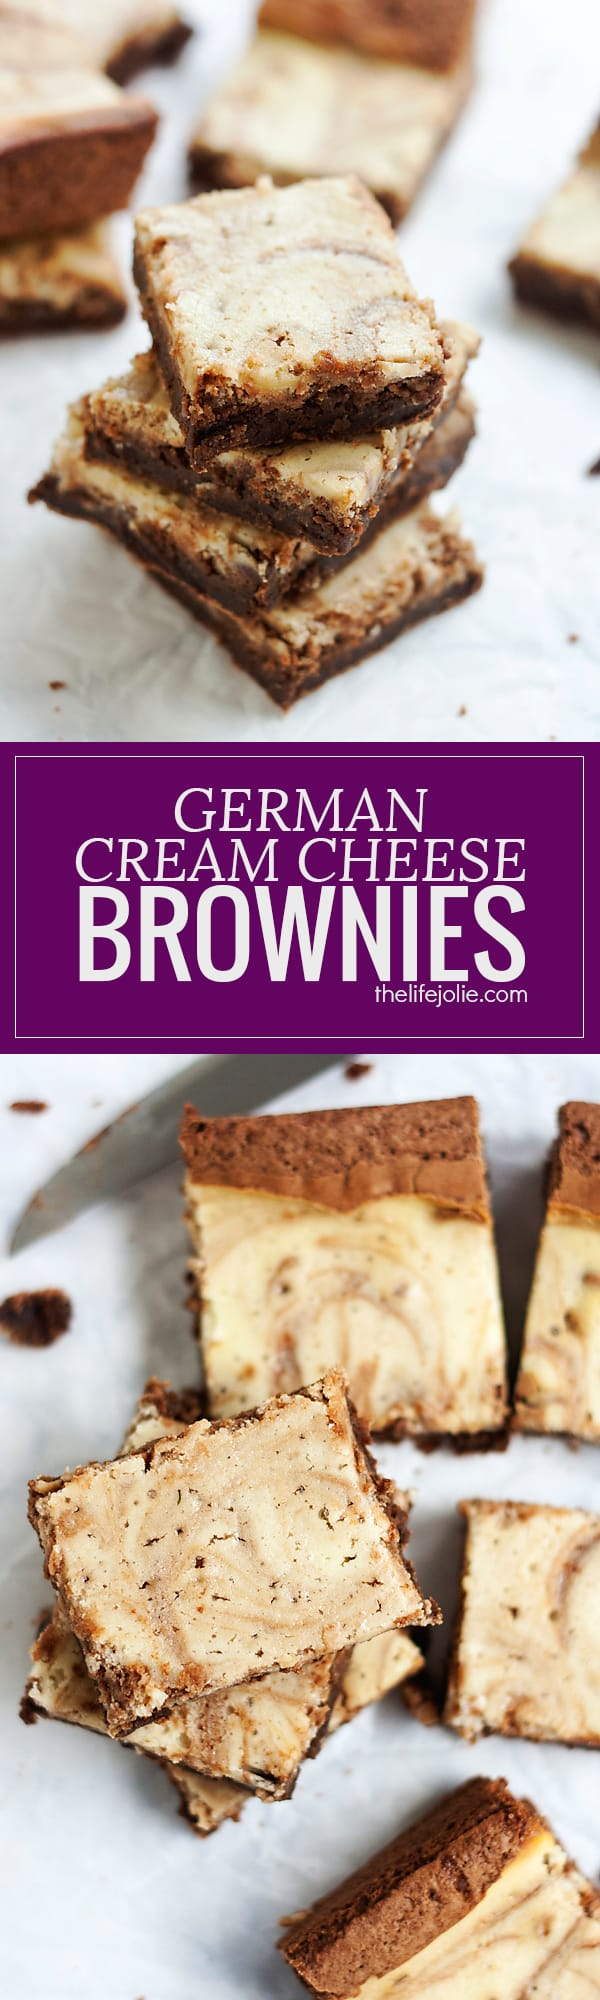 These homemade German Cream Cheese Brownies are a delicious addition to any holiday cookie platter. This recipe is made from scratch but SO easy! Rich chocolate brownies swirled with sweet cream cheese helps make this a decadent treat your family will love!